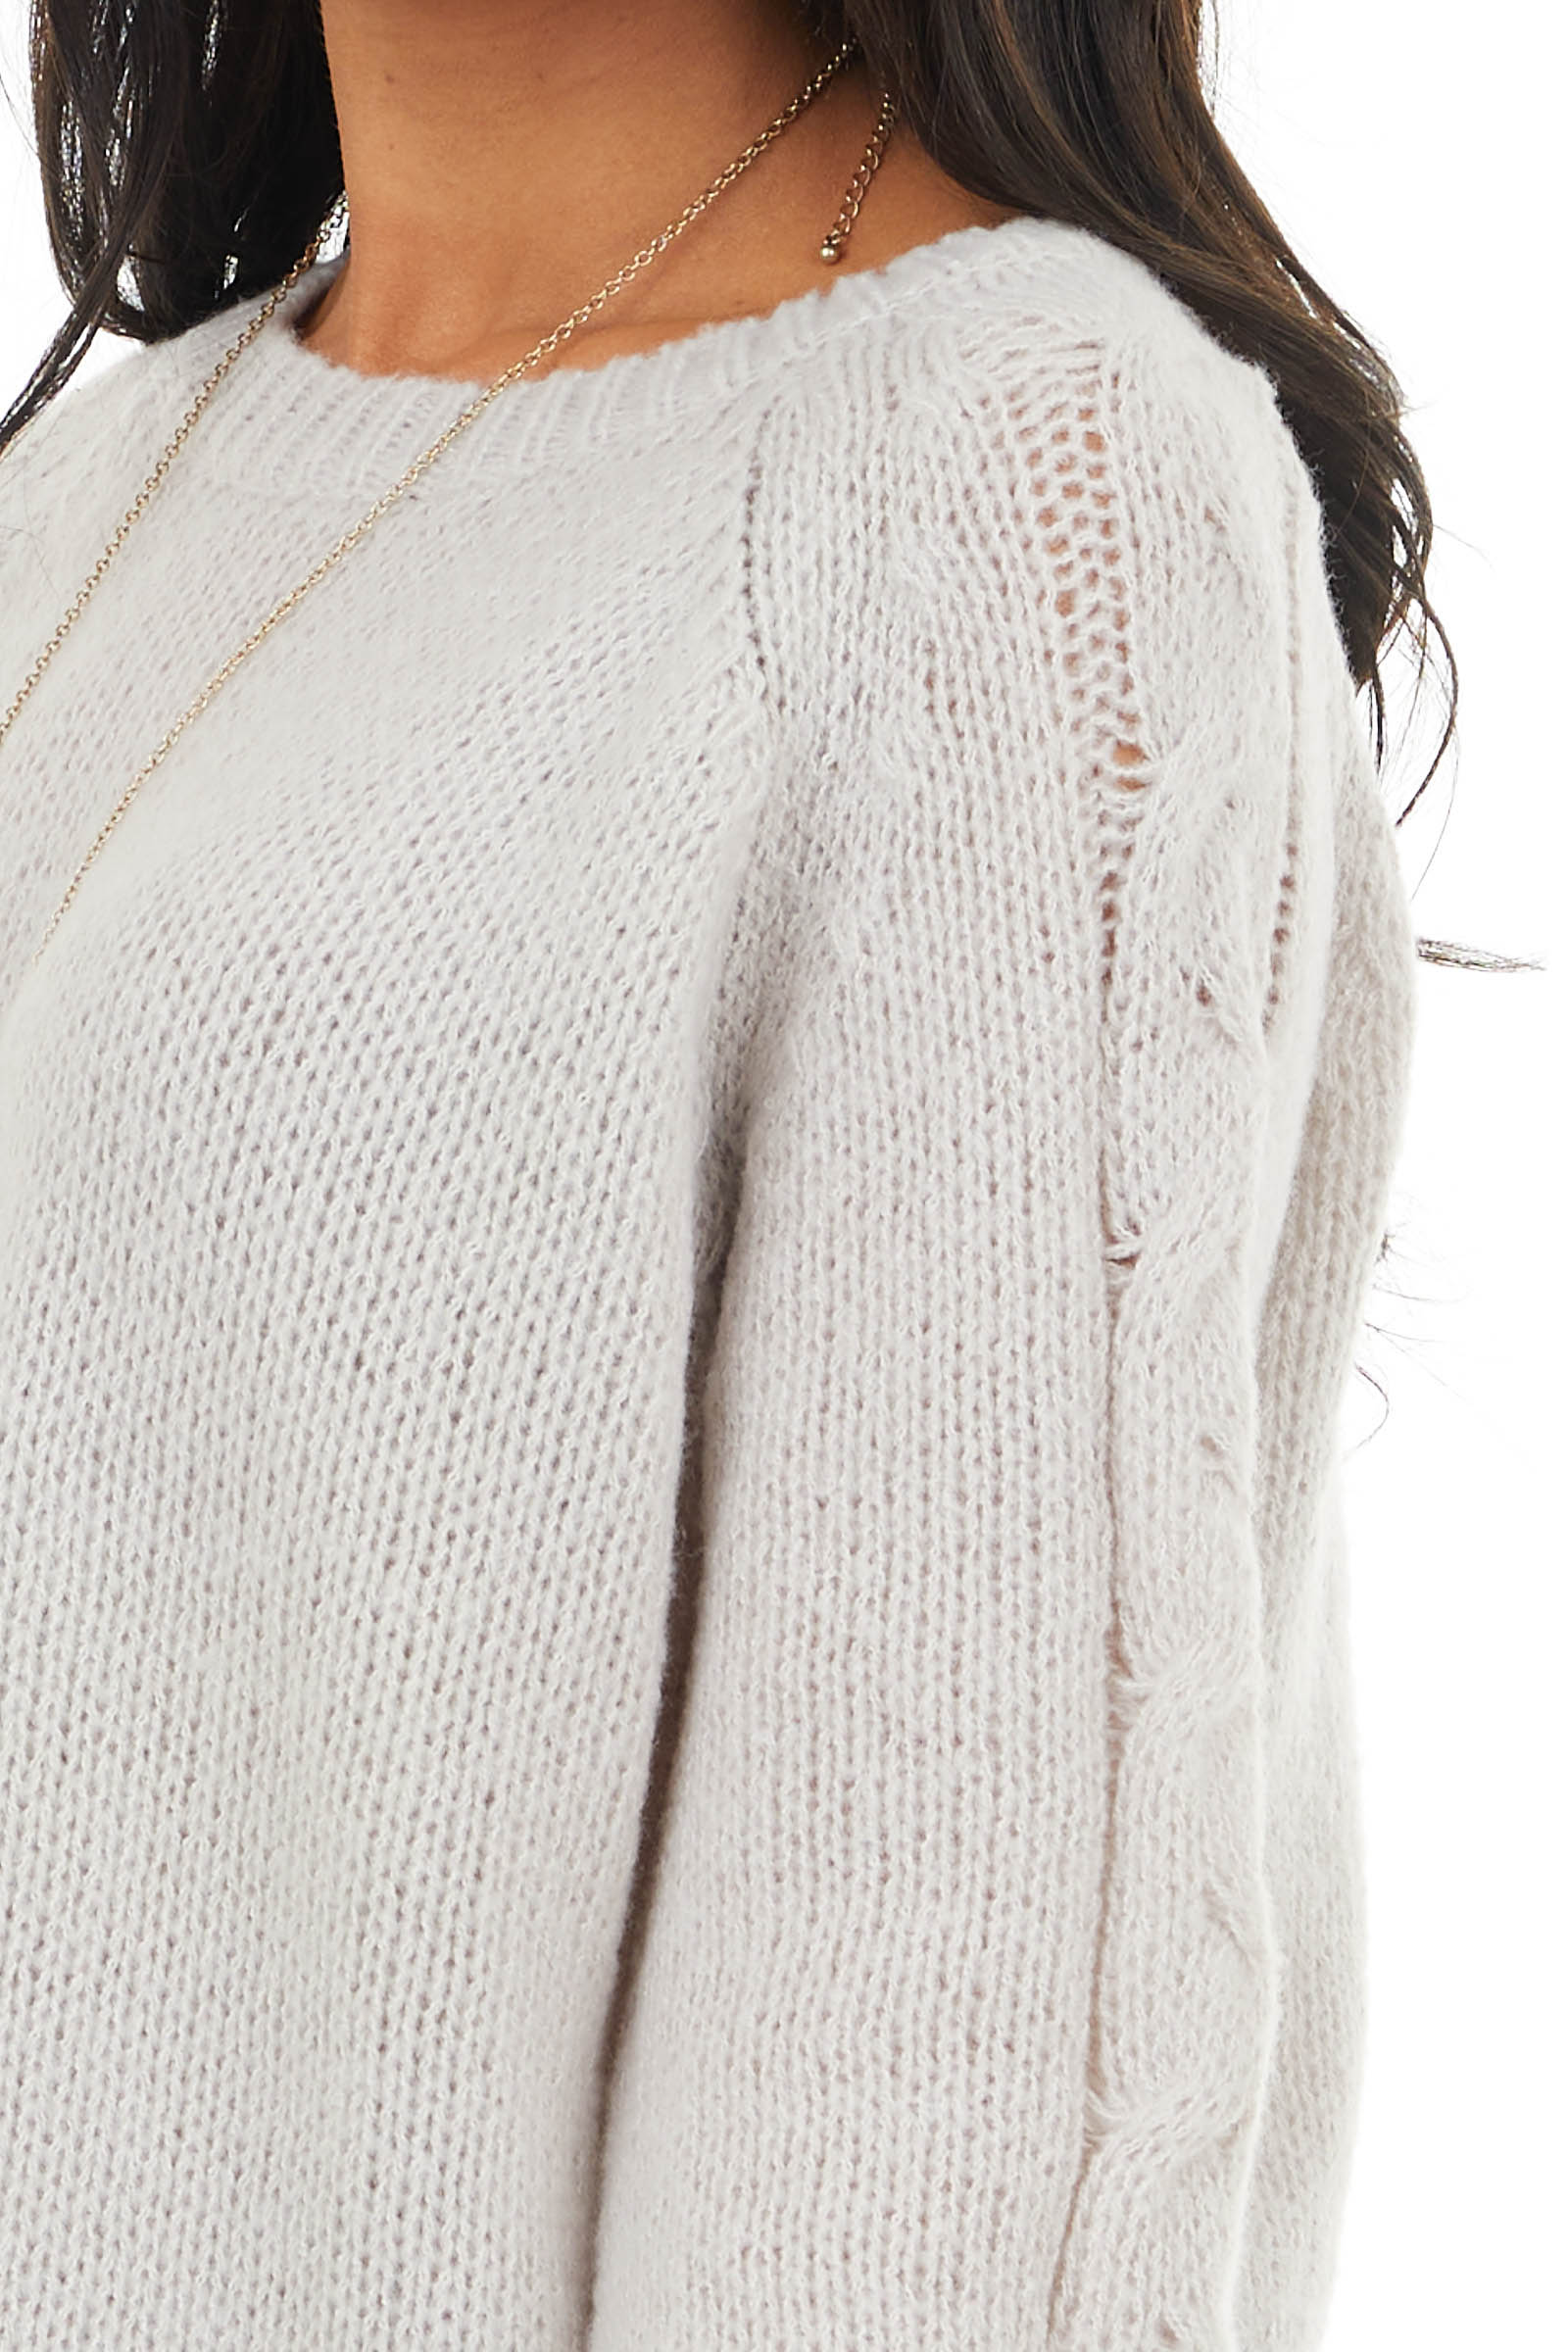 Oatmeal Sweater with Crochet Detail on Long Bell Sleeves